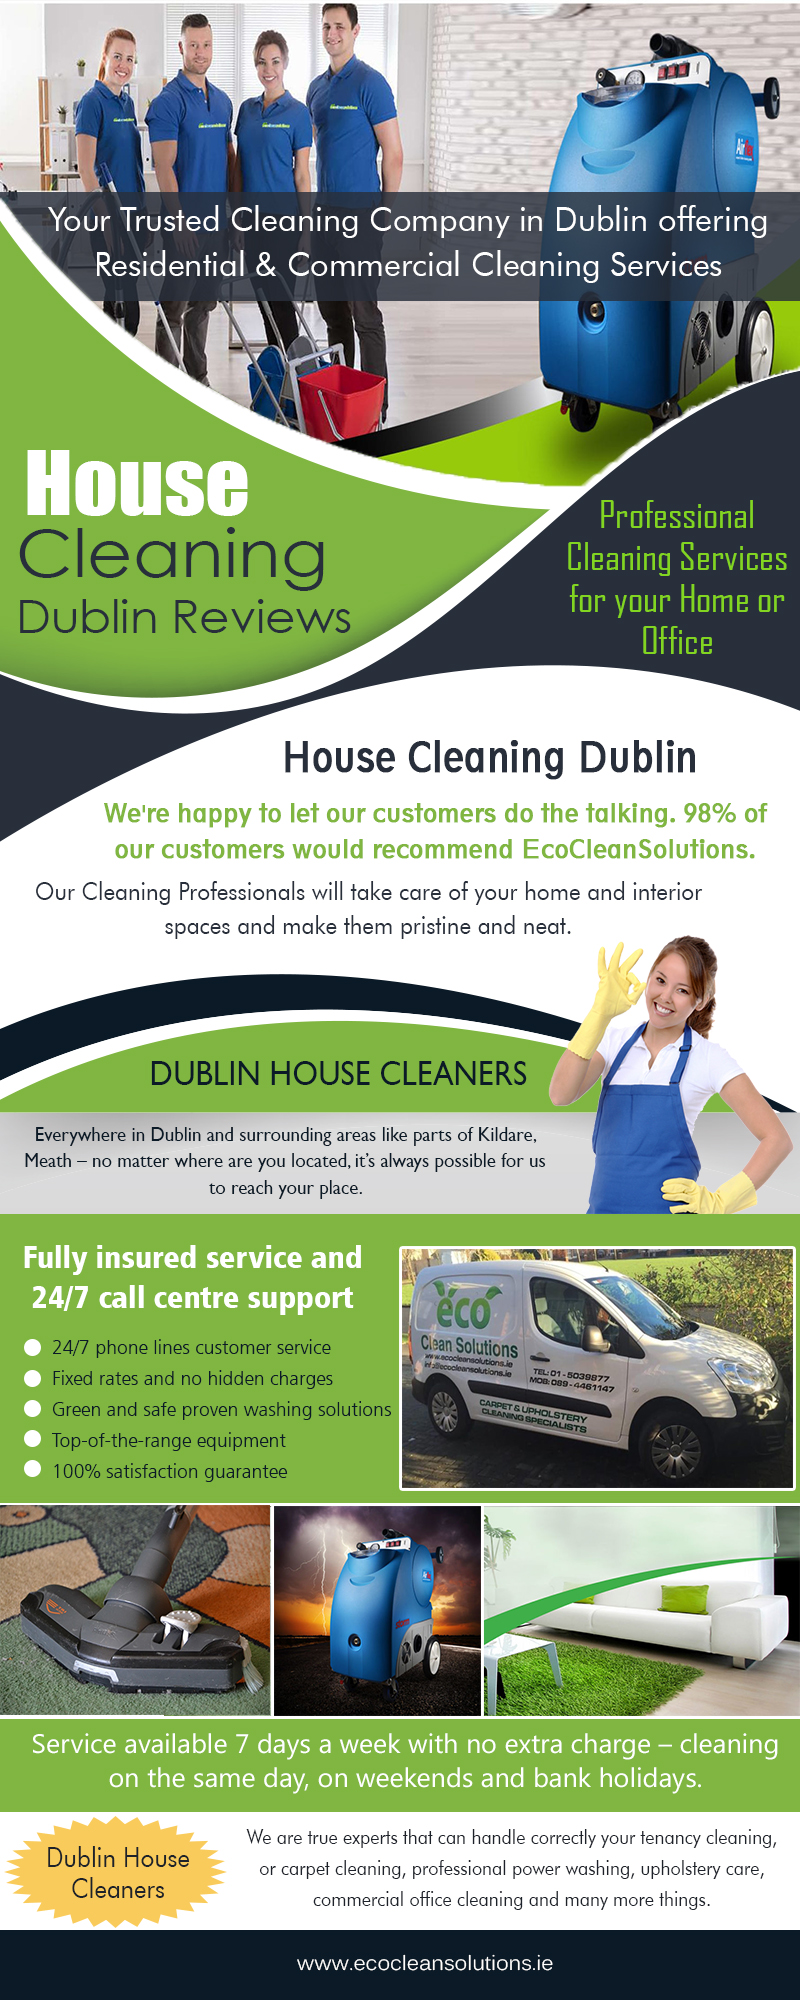 House Cleaning Dublin Reviews